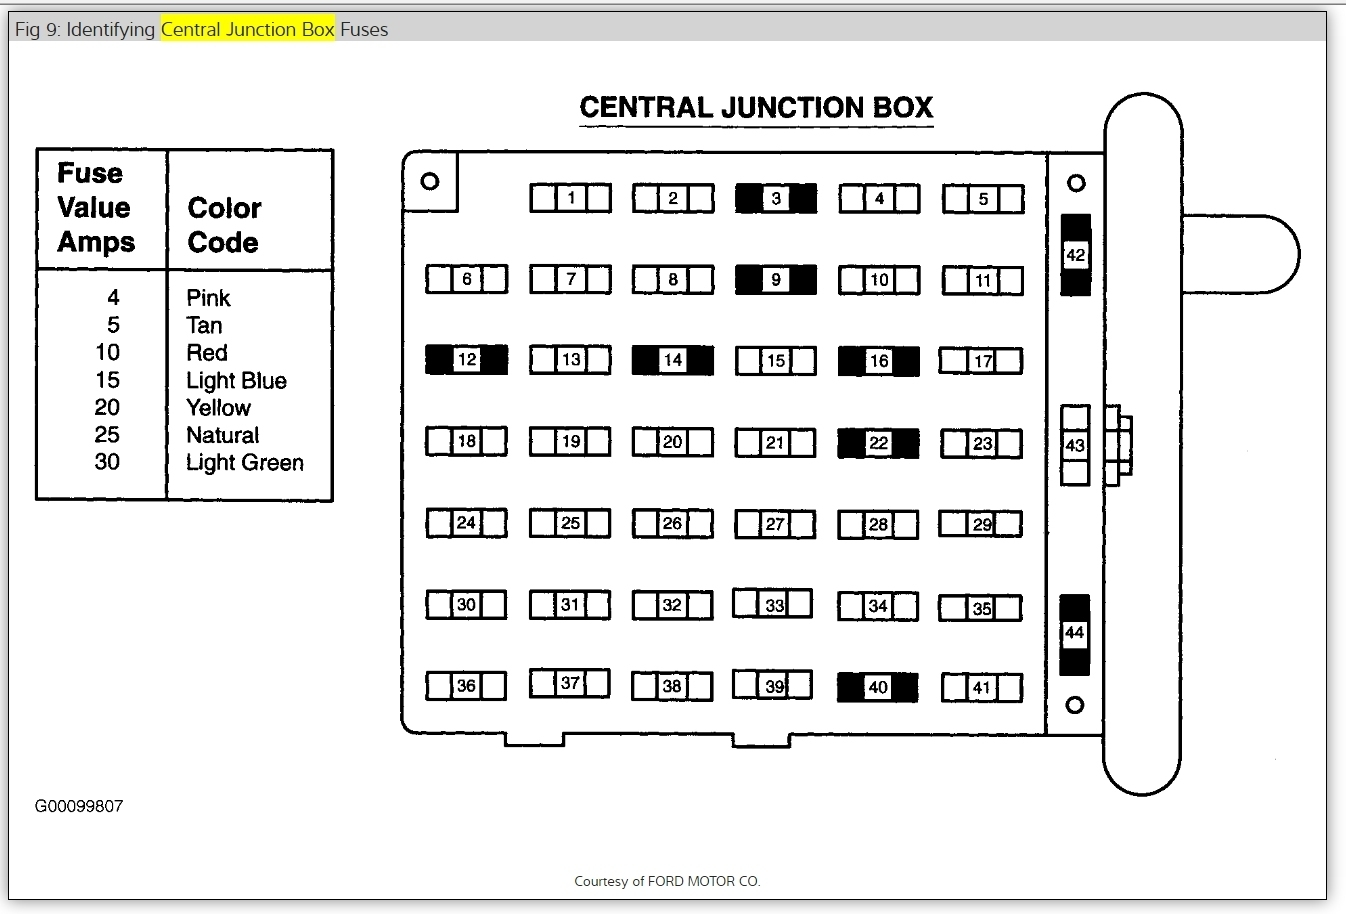 original 1999 ford mustang fuse box layout electrical problem 1999 ford 2004 mustang fuse box layout at crackthecode.co